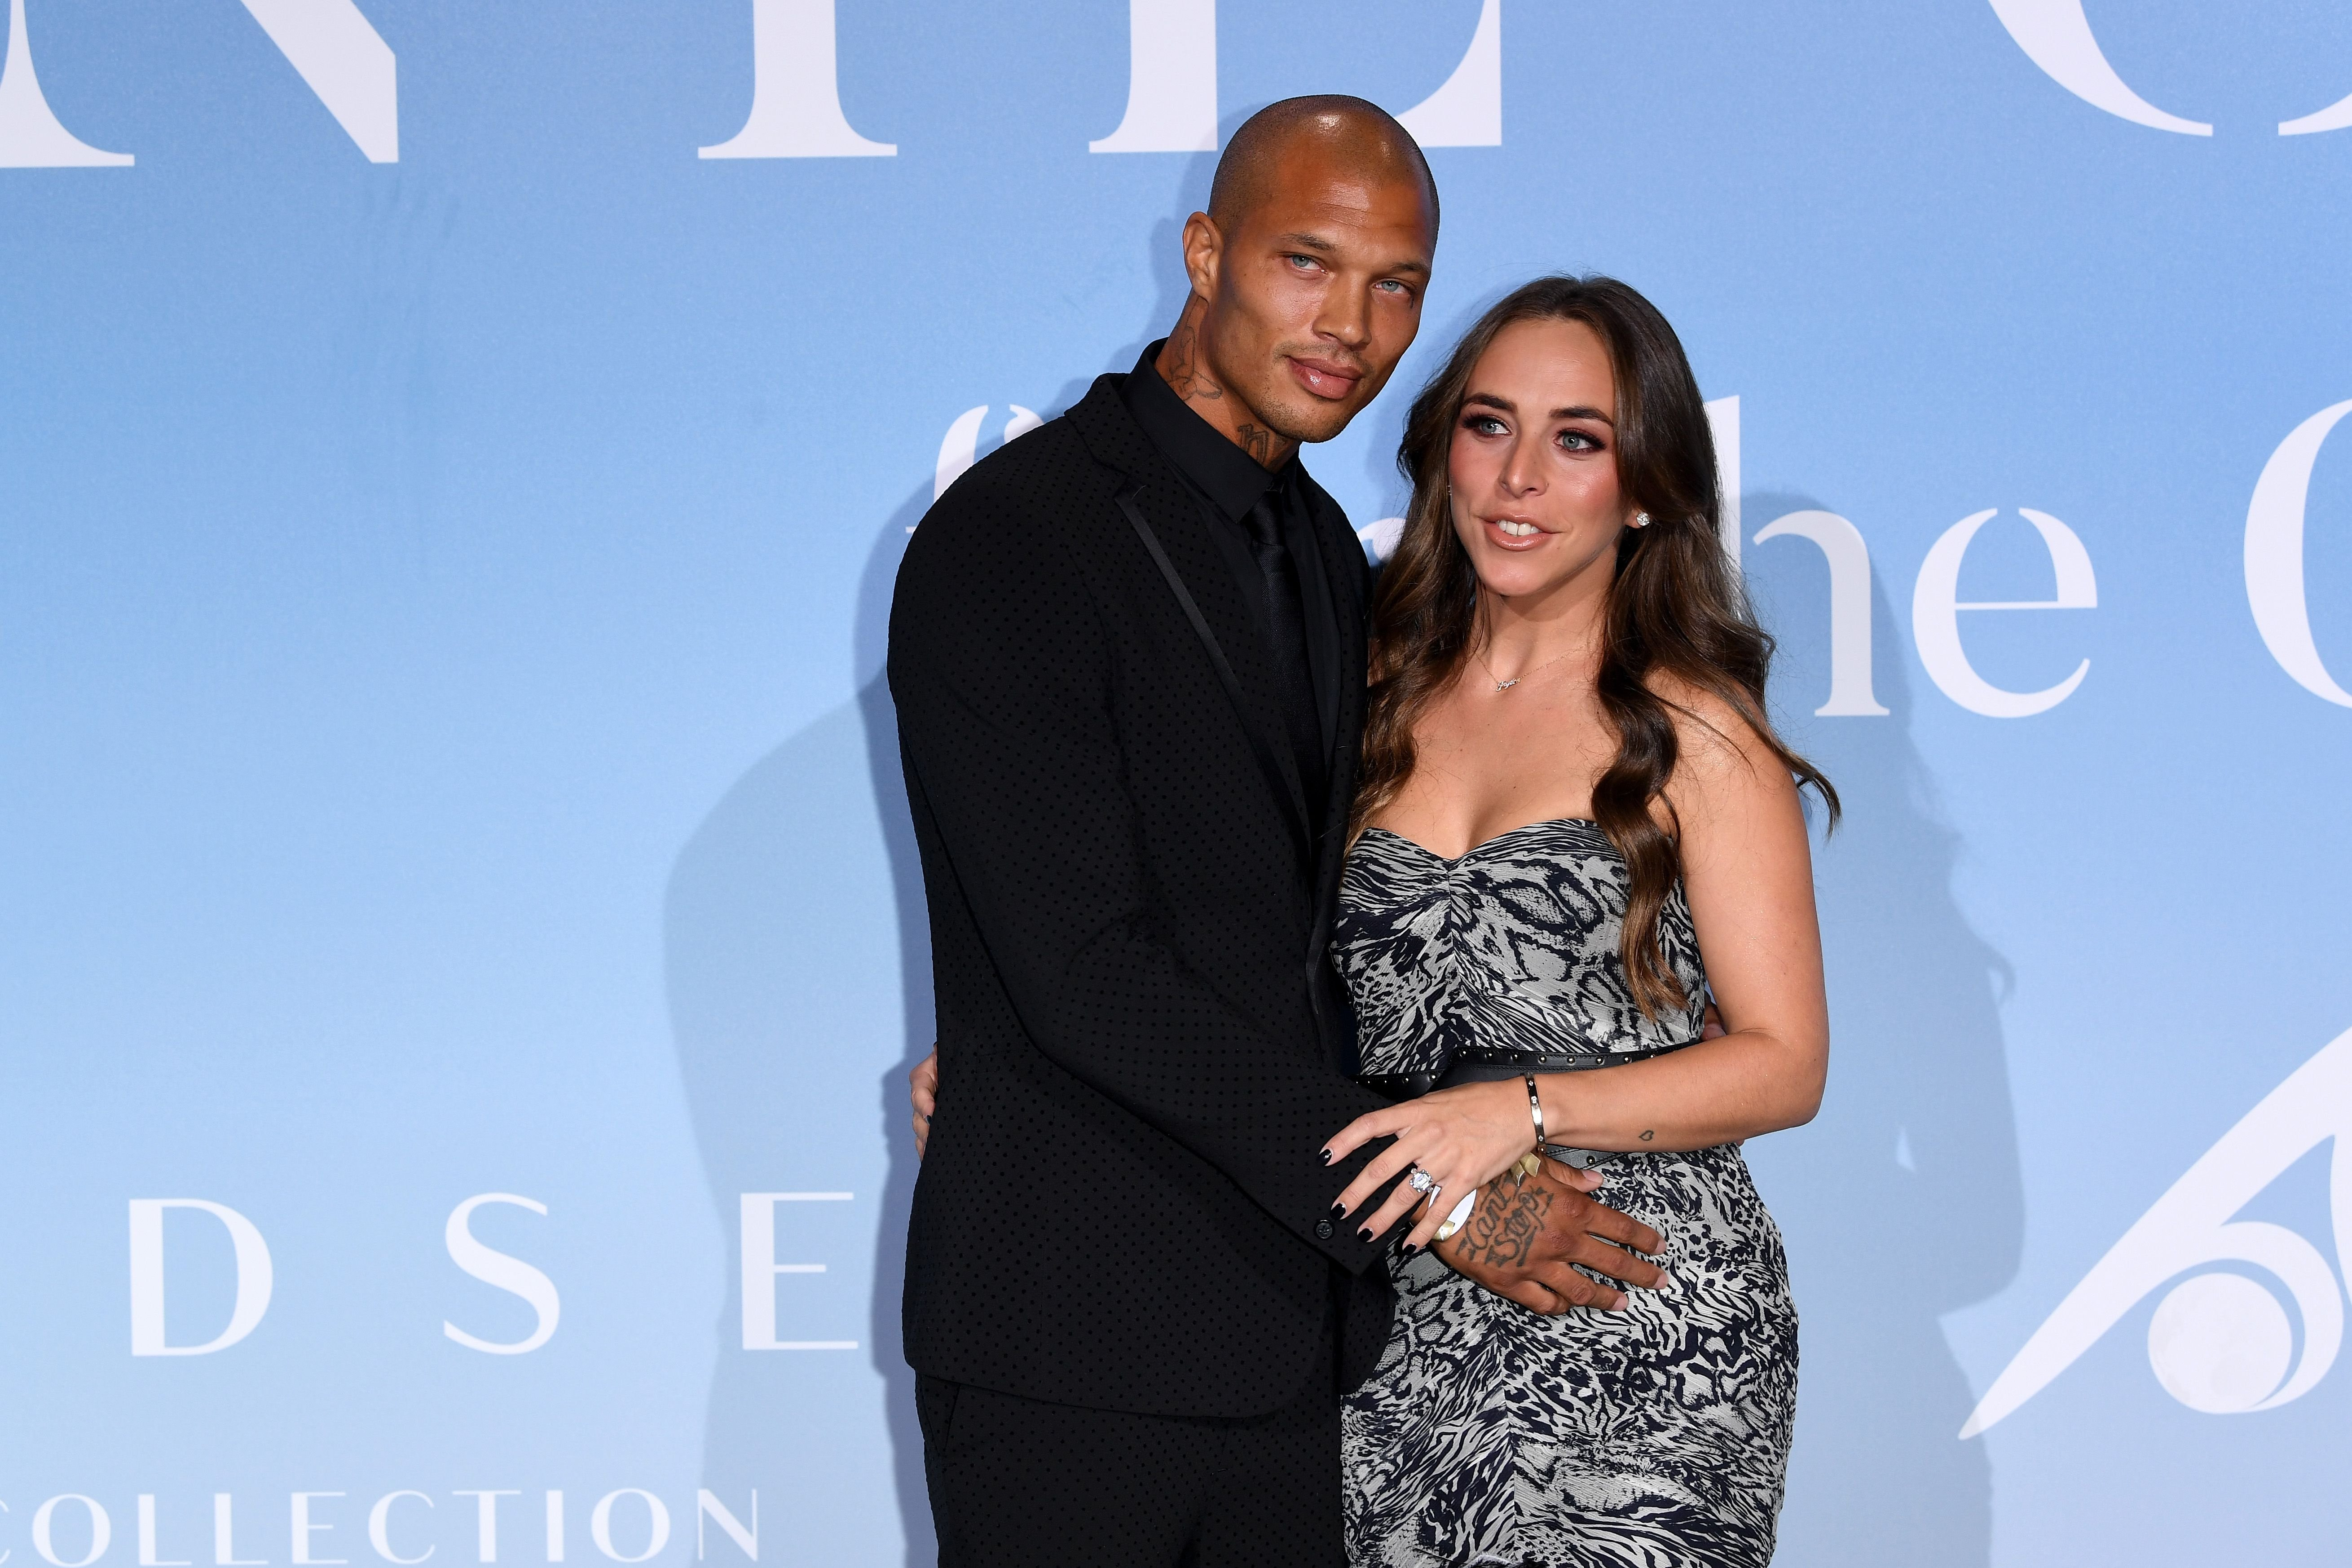 Jeremy Meeks and Chloe Green at the Gala for the Global Ocean hosted by H.S.H. Prince Albert II of Monaco in 2018 in Monte-Carlo | Source: Getty Images